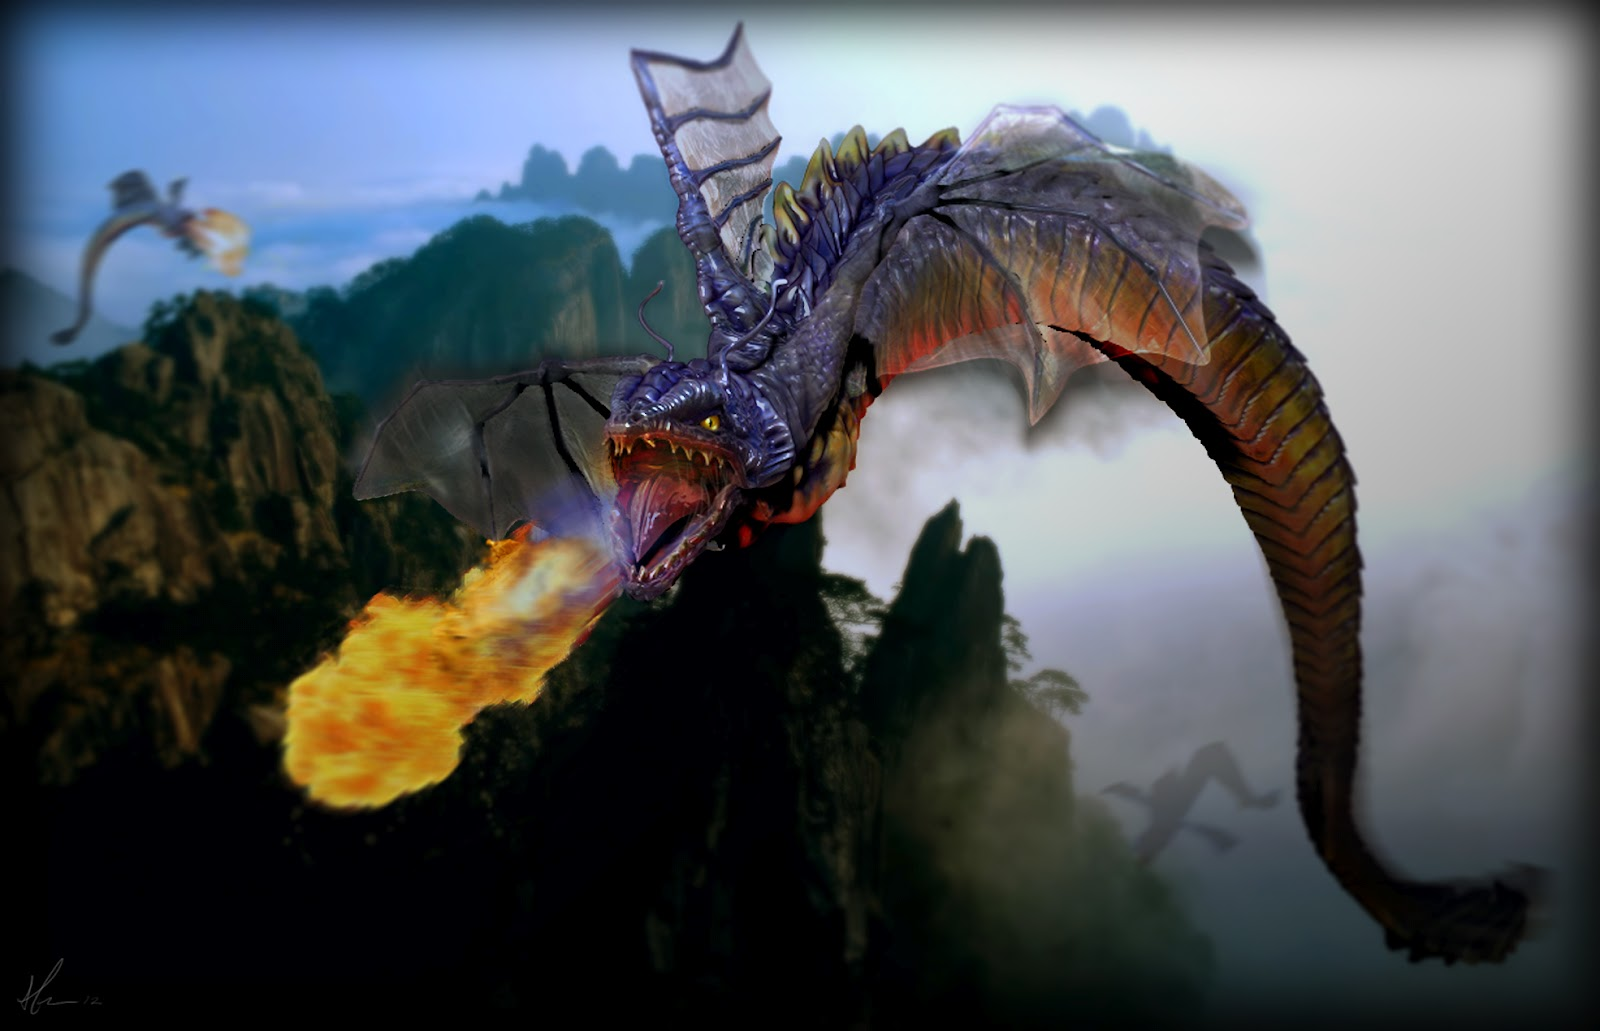 ... dragon this dragon is a deity who was represented as a serpent dragon Dragon